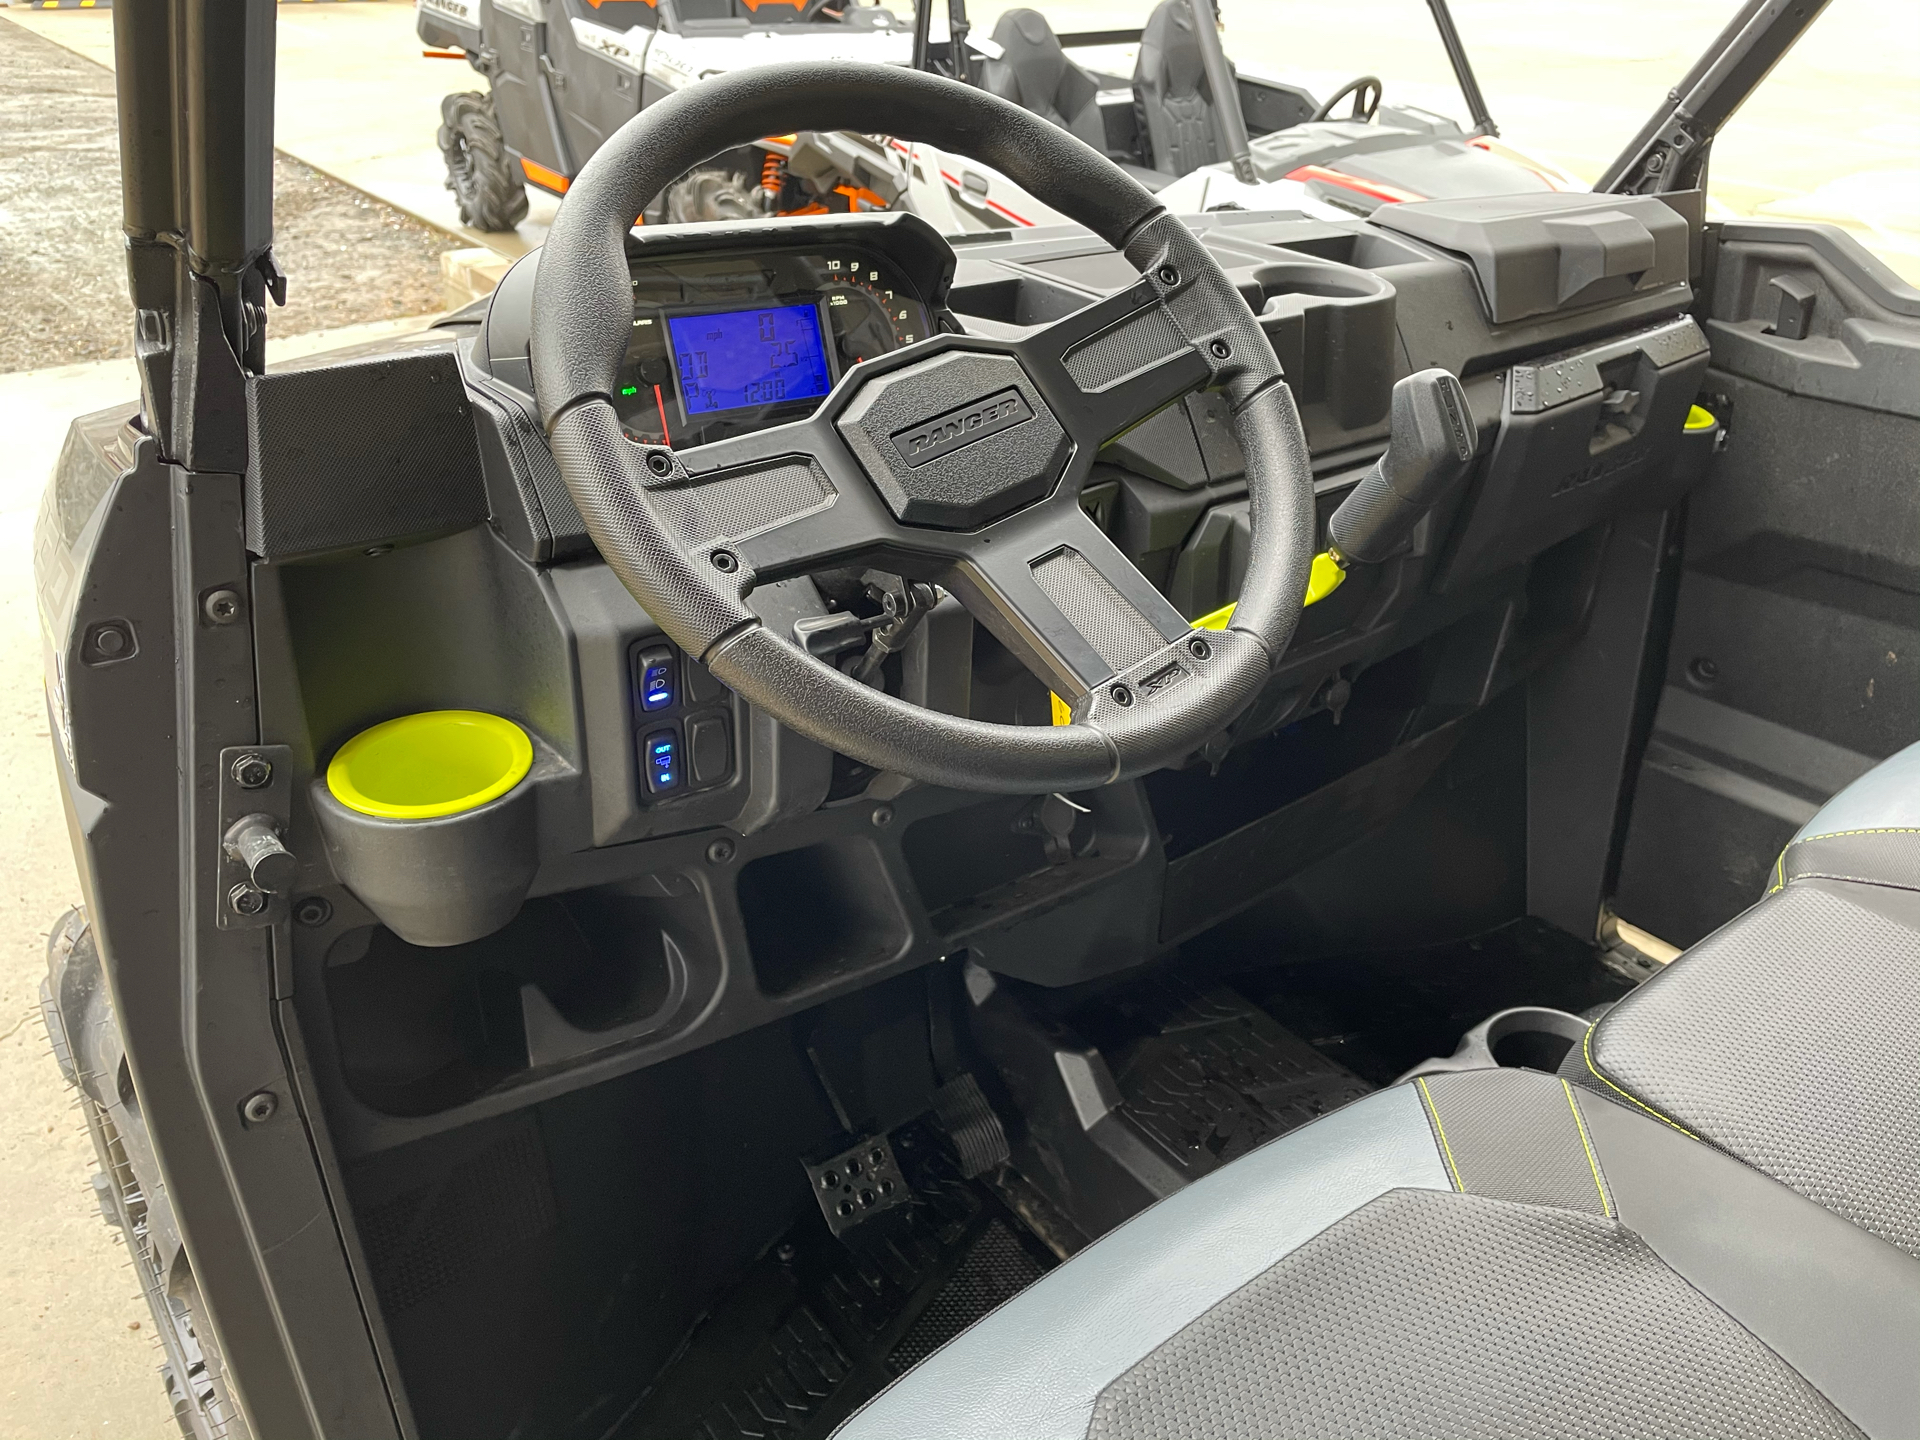 2020 Polaris Ranger XP 1000 High Lifter Edition in Marshall, Texas - Photo 5